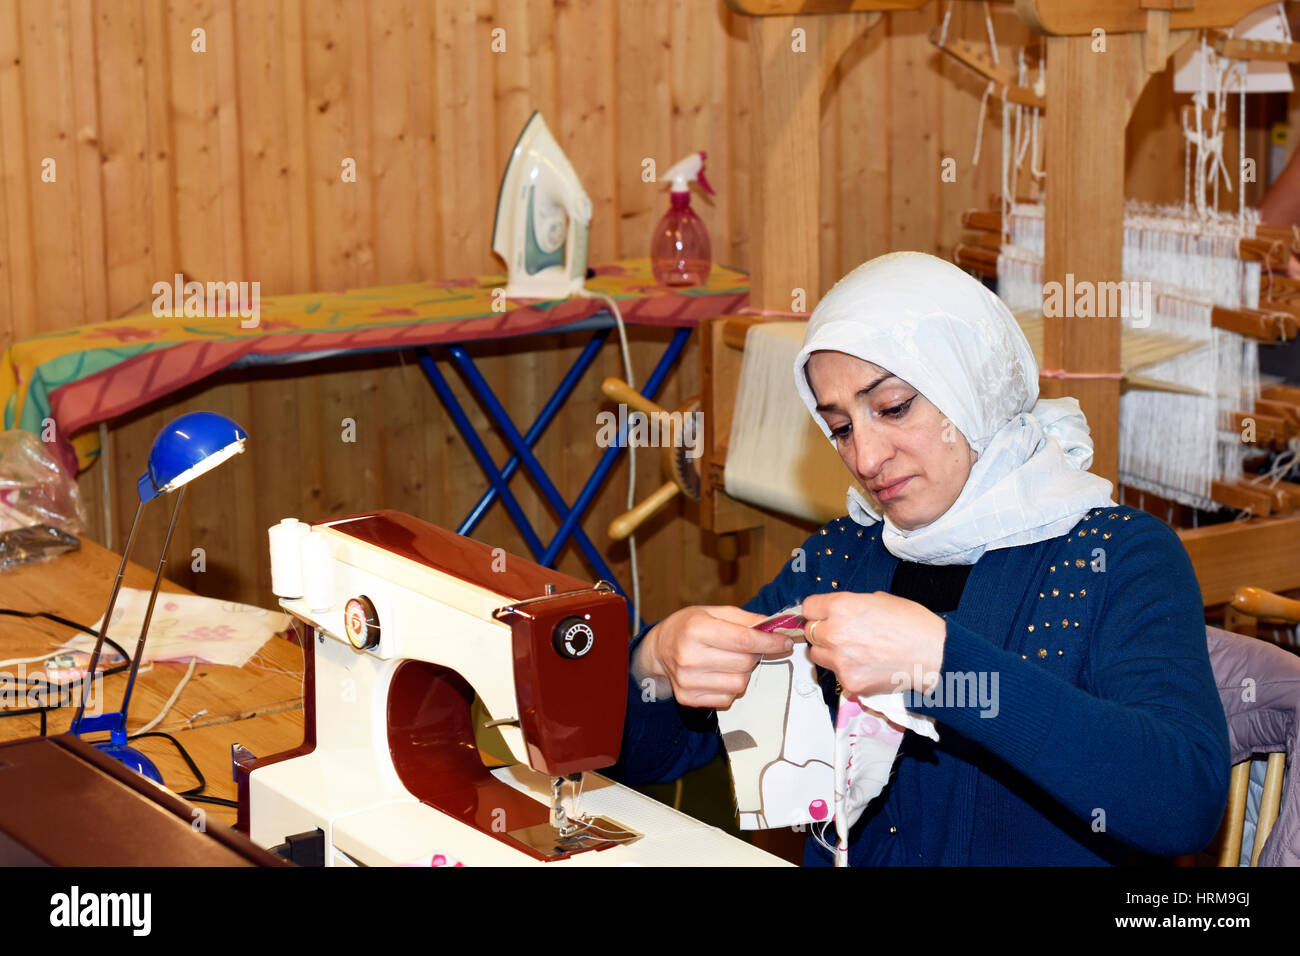 Mellansel,Sweden - Februari 02,2017:Refugee women working with handwork as a part of integration to the Swedish - Stock Image